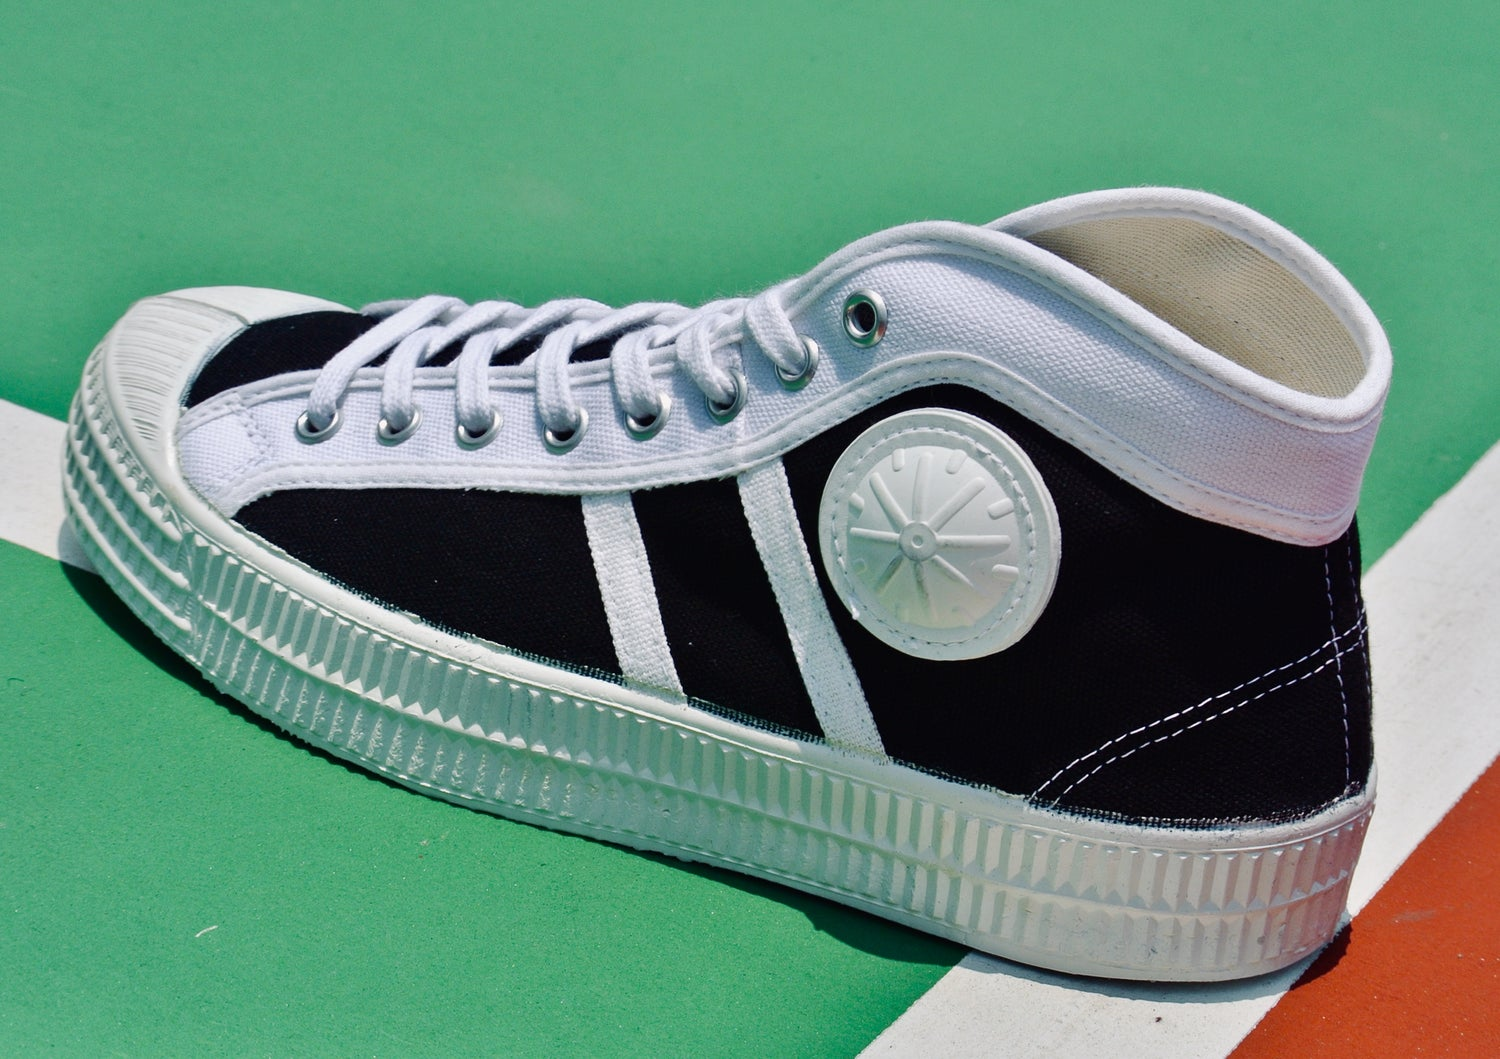 Image of Vegancraft hi top canvas sneaker shoes made in Slovakia